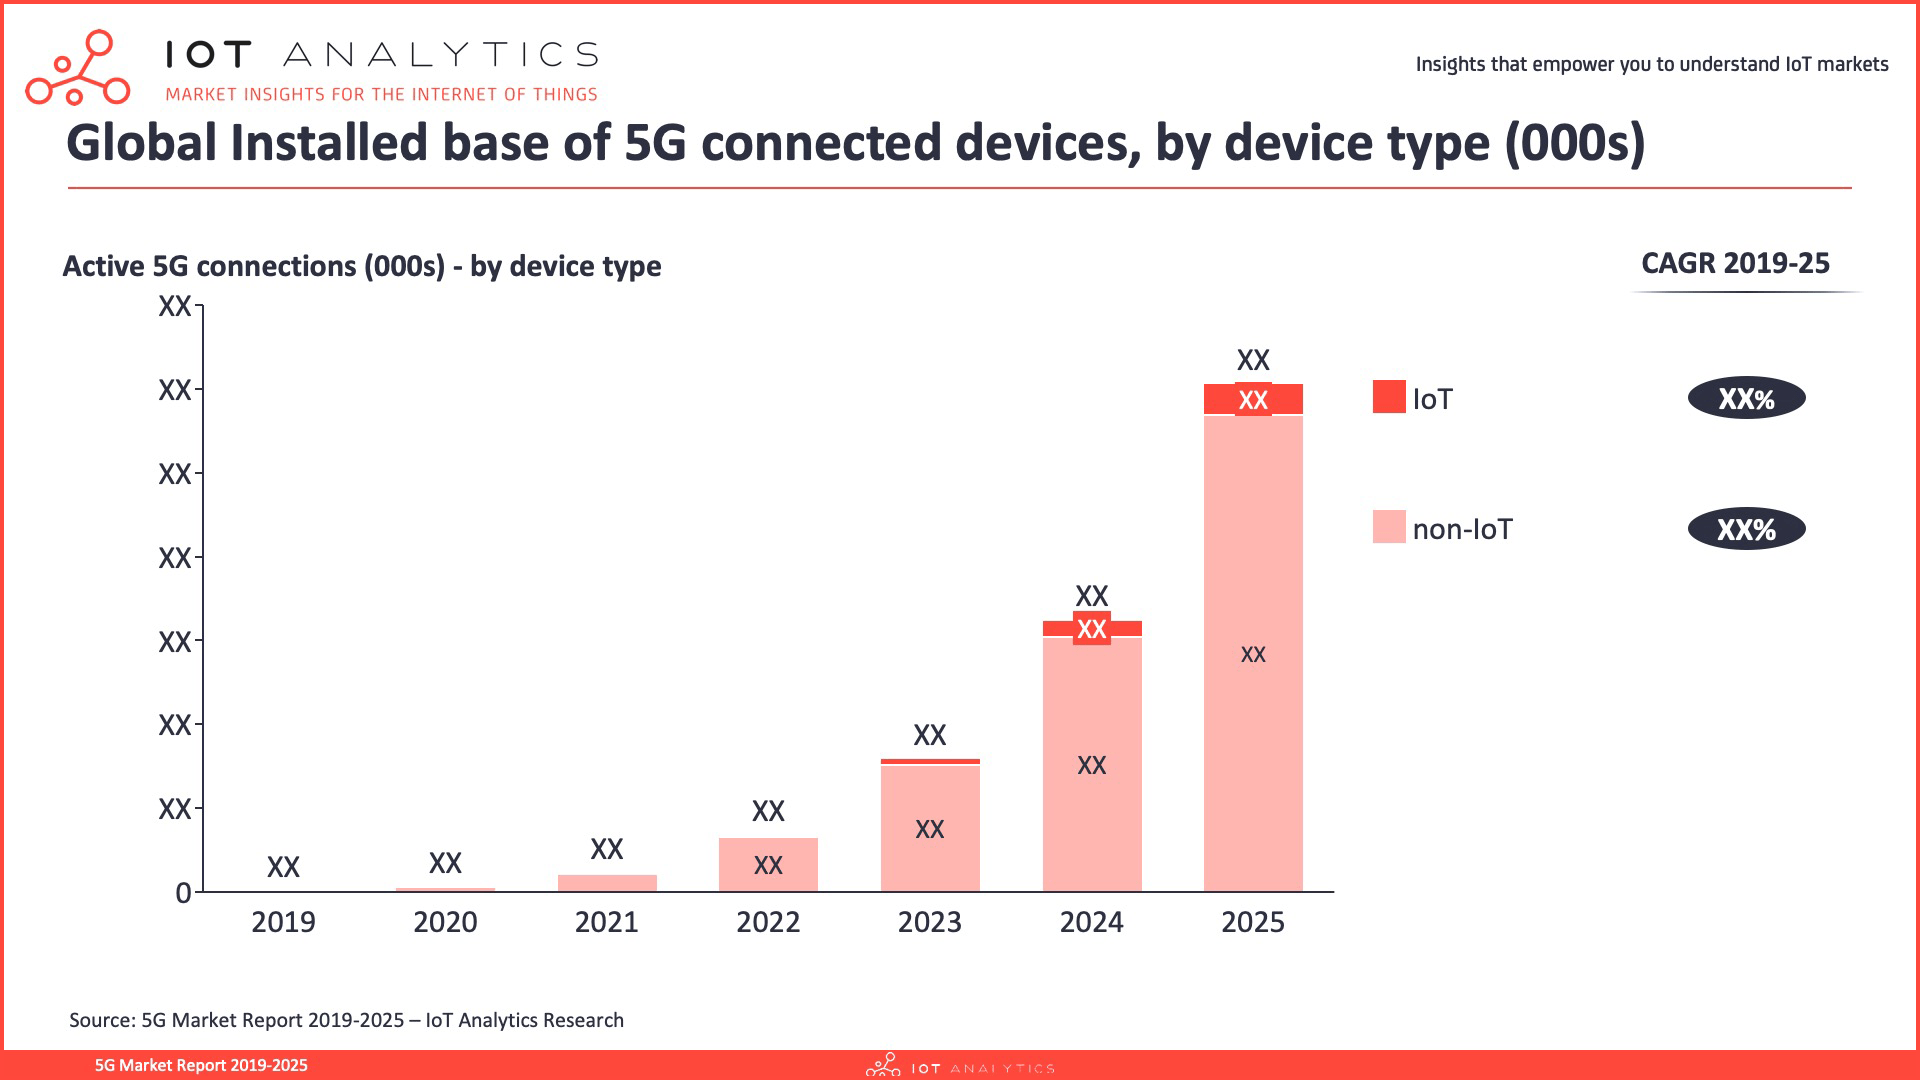 5G Market Report 2019-2025 - 5G connected devices by type